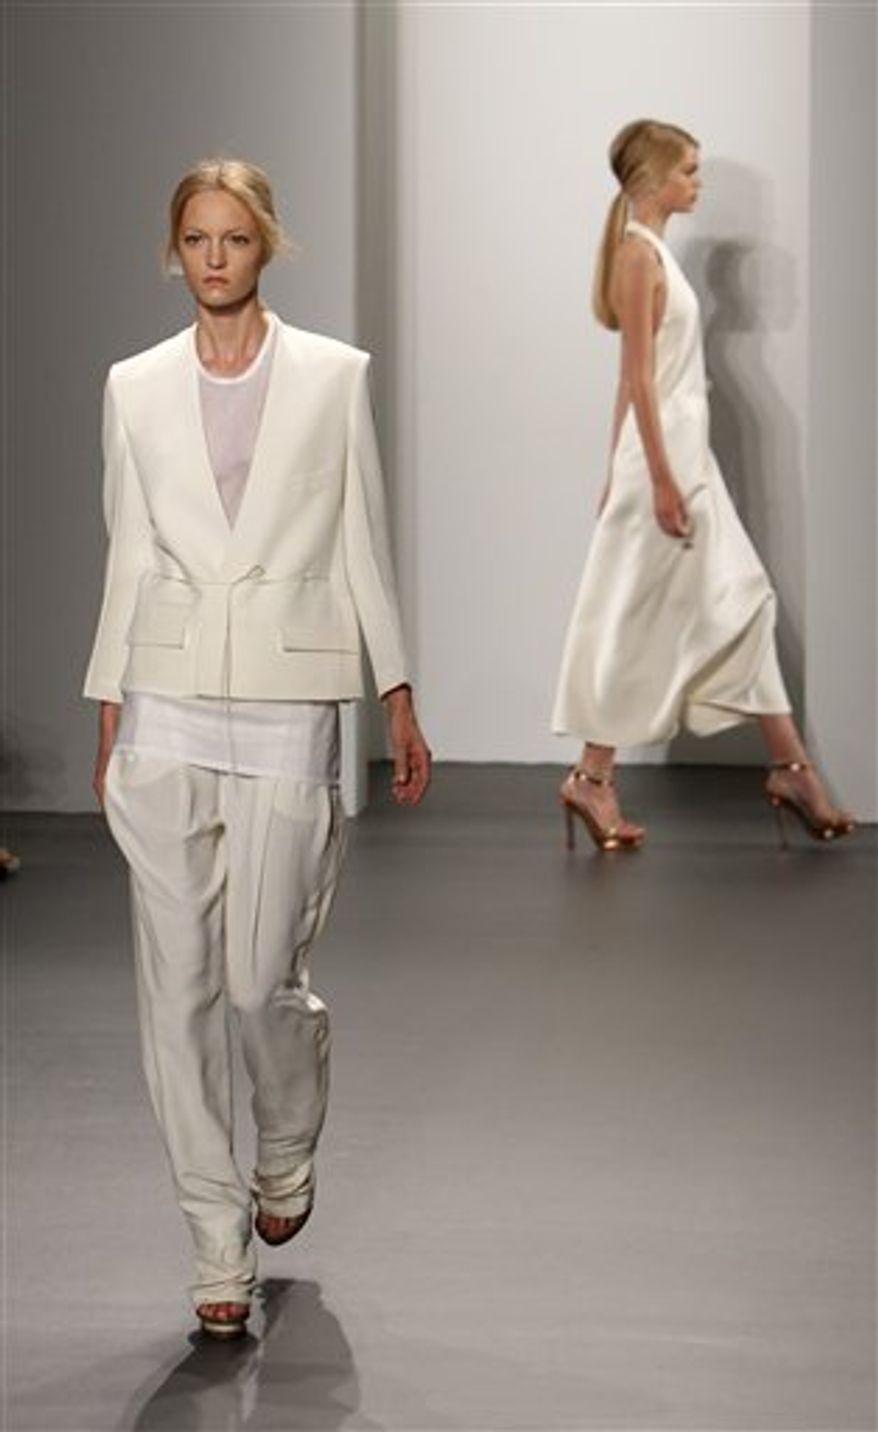 The Calvin Klein spring 2011 collection is modeled during Fashion Week in New York, Thursday, Sept. 16, 2010.  (AP Photo/Seth Wenig)